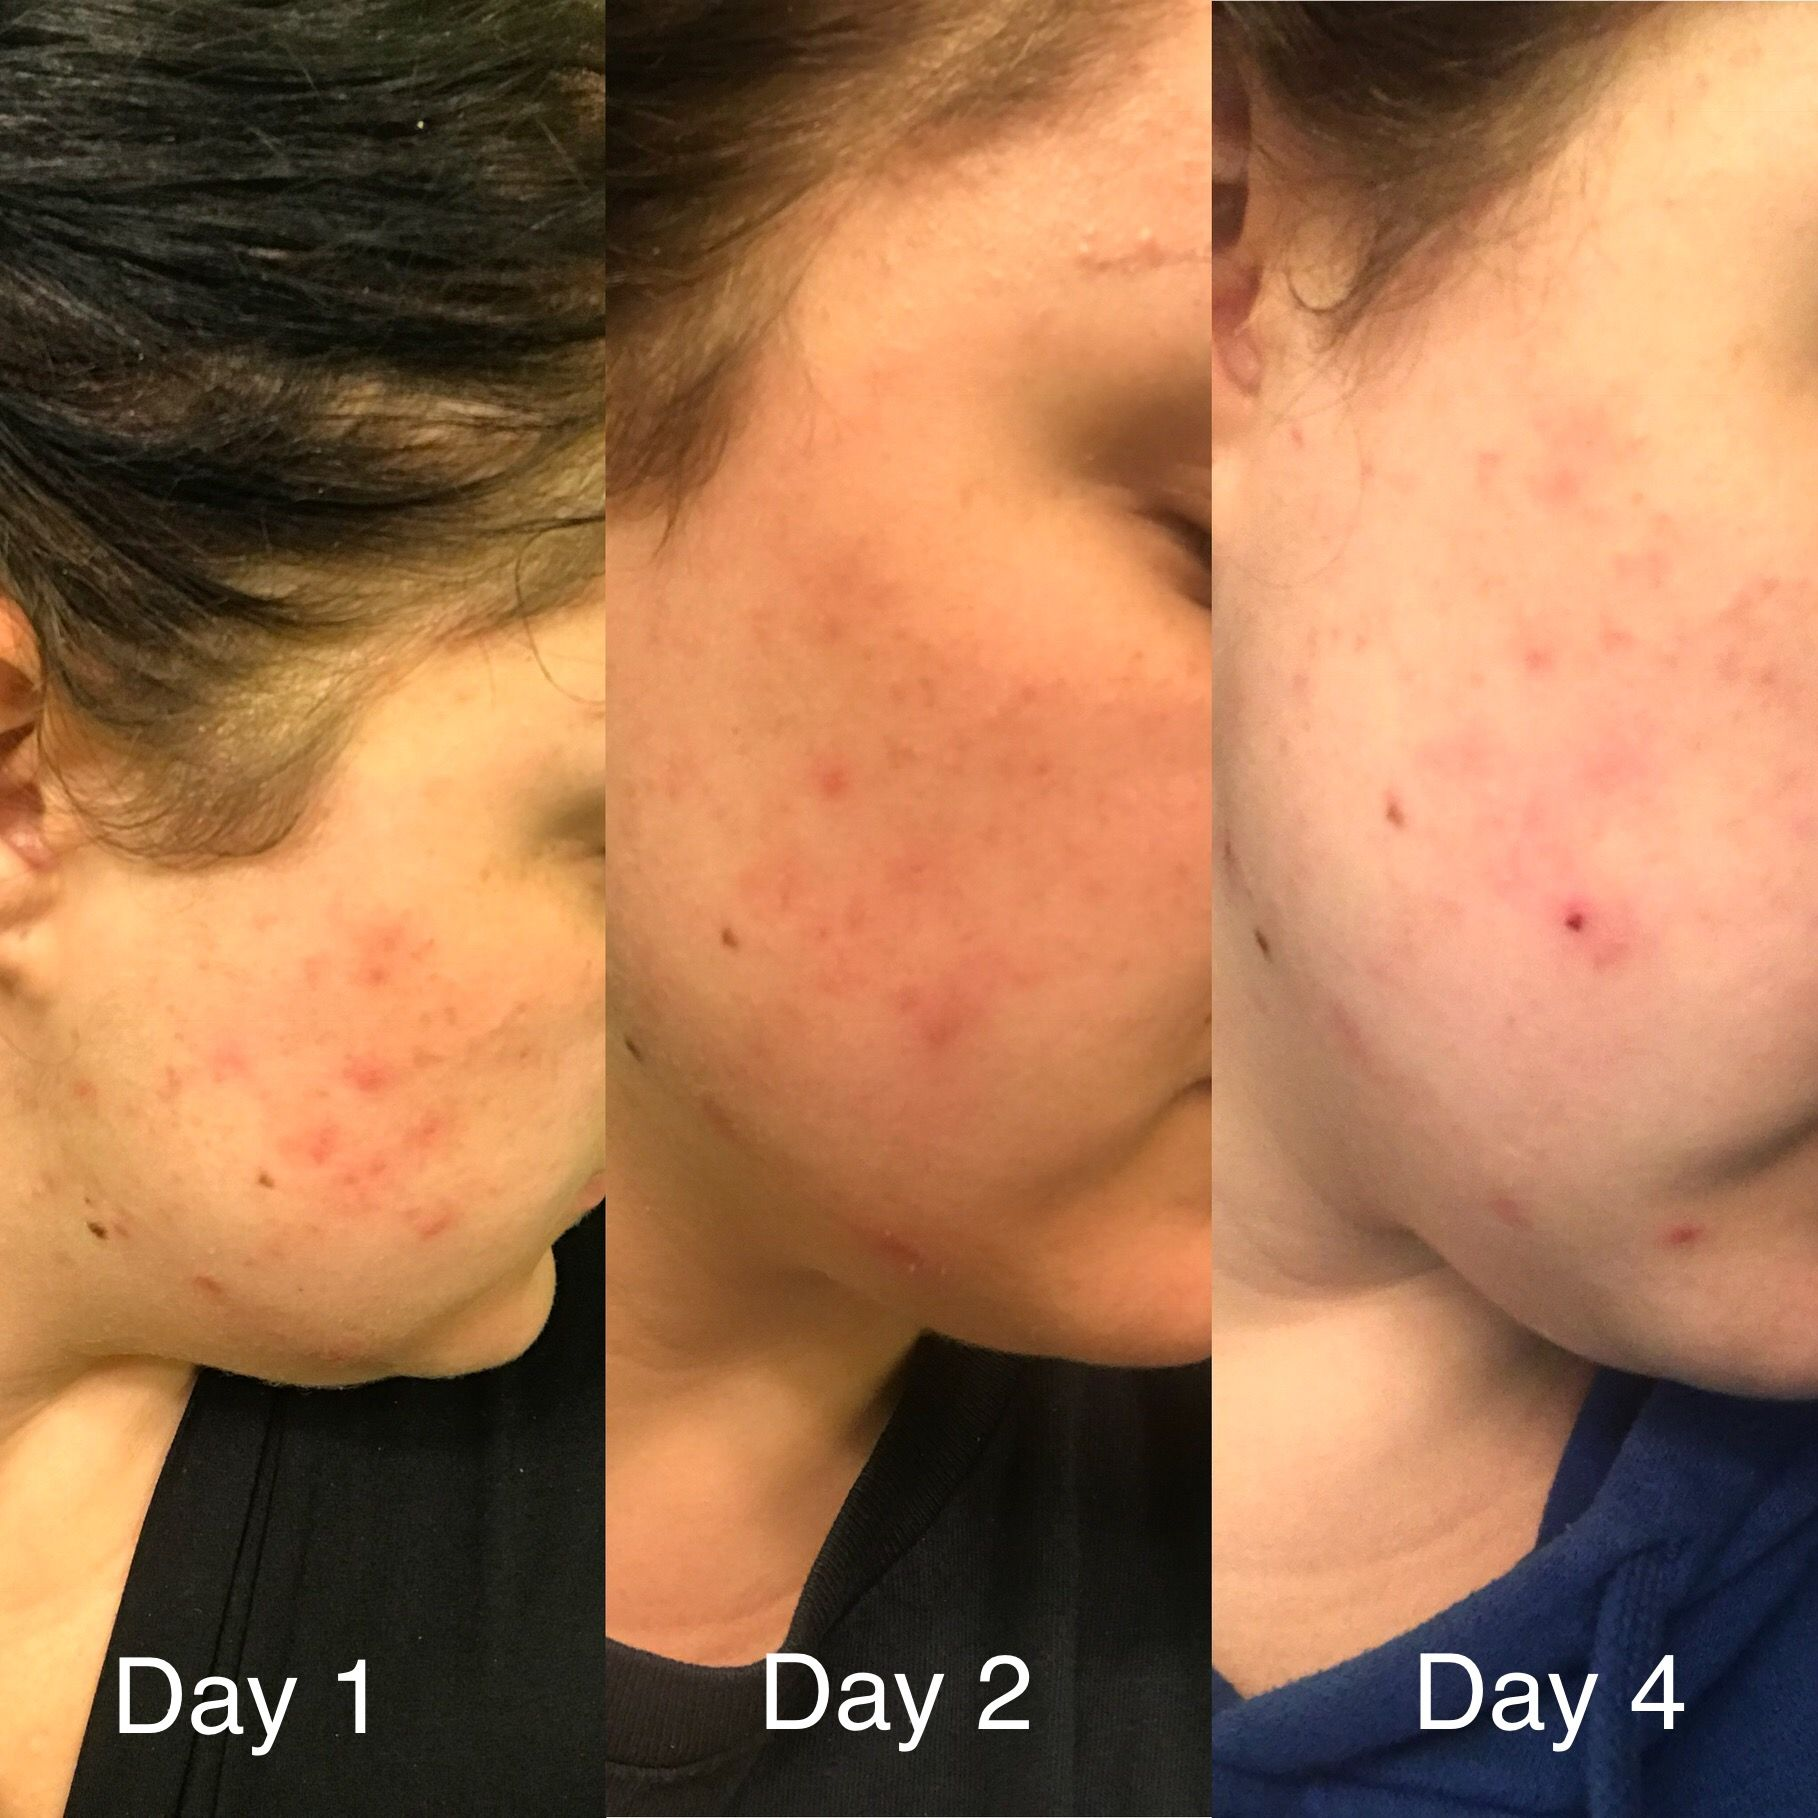 Progress Photos Of My Cystic Acne I Used Limelight By Alcone Skincare Products Morning Routine Dream Clean Skin Ther Skin Therapist Skin Care Skin Polish